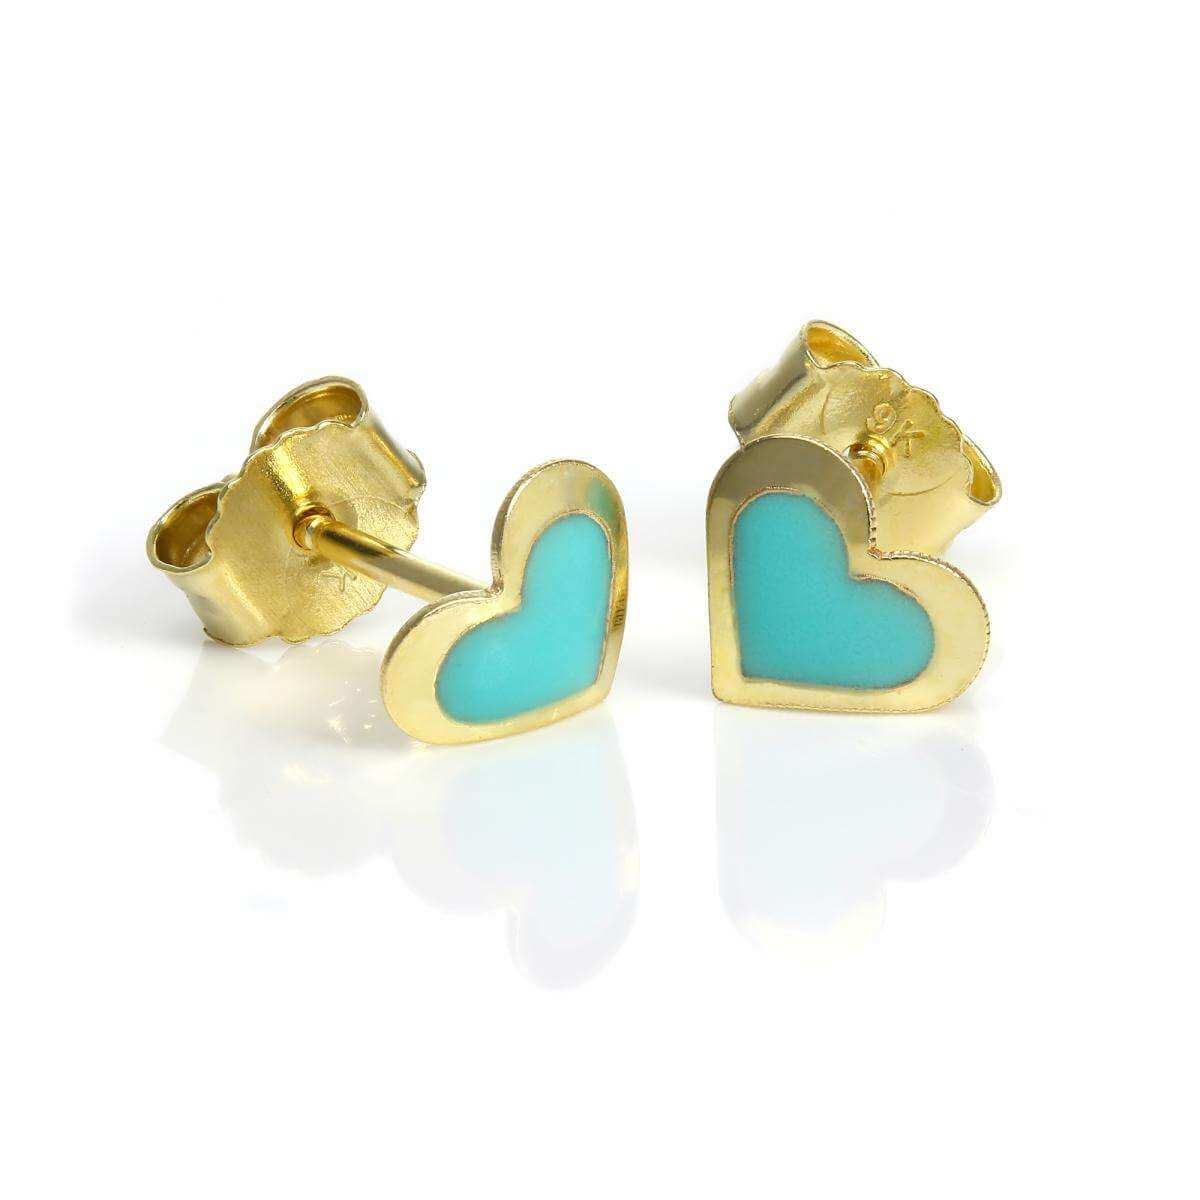 9ct Gold & Turquoise Enamel Heart Stud Earrings